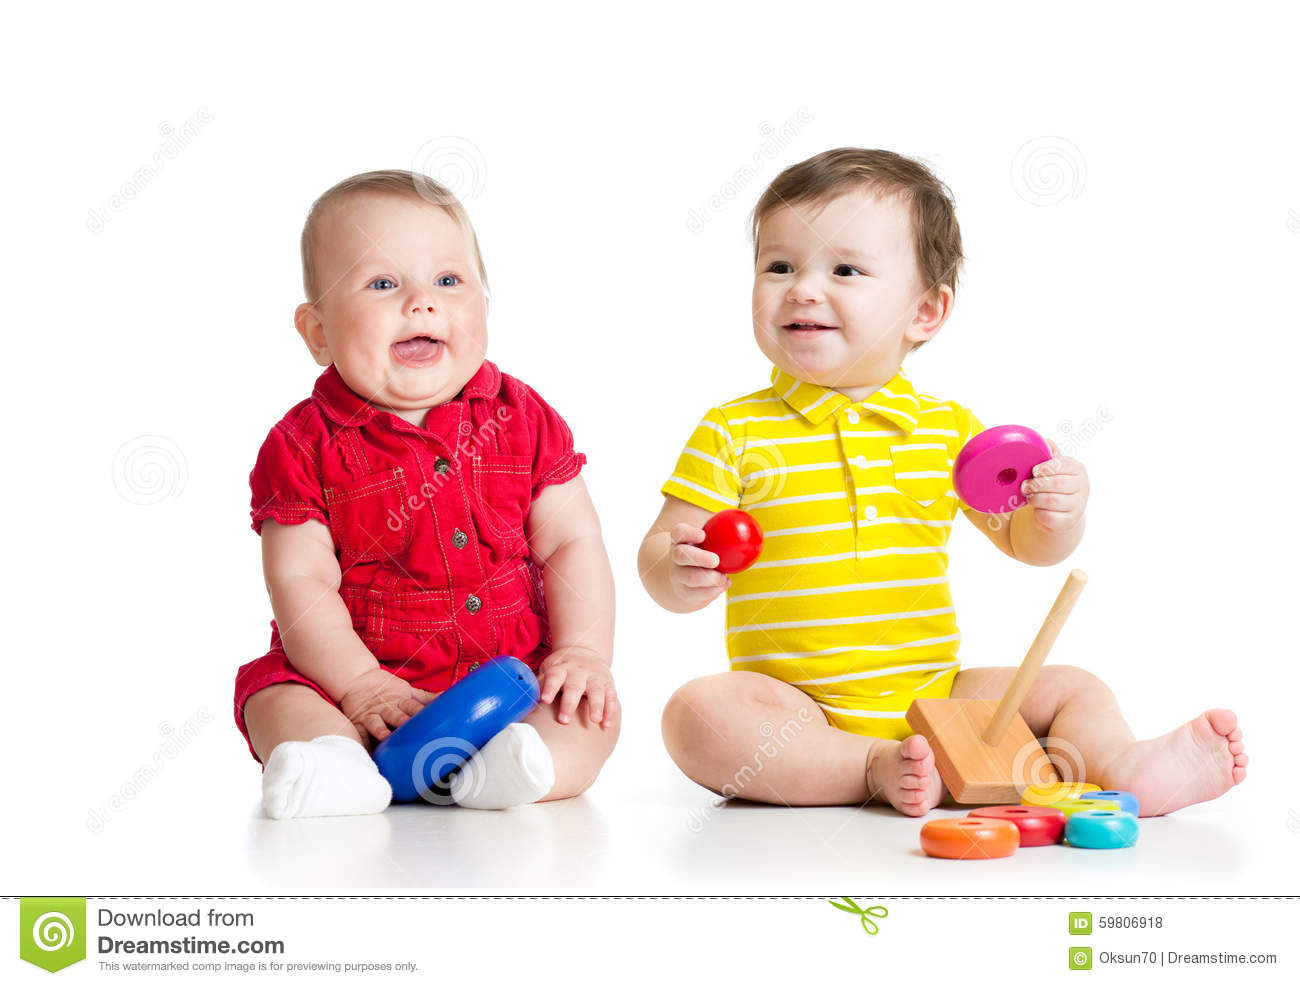 Toddler Toys Photography : Two adorable children playing with toys toddlers stock